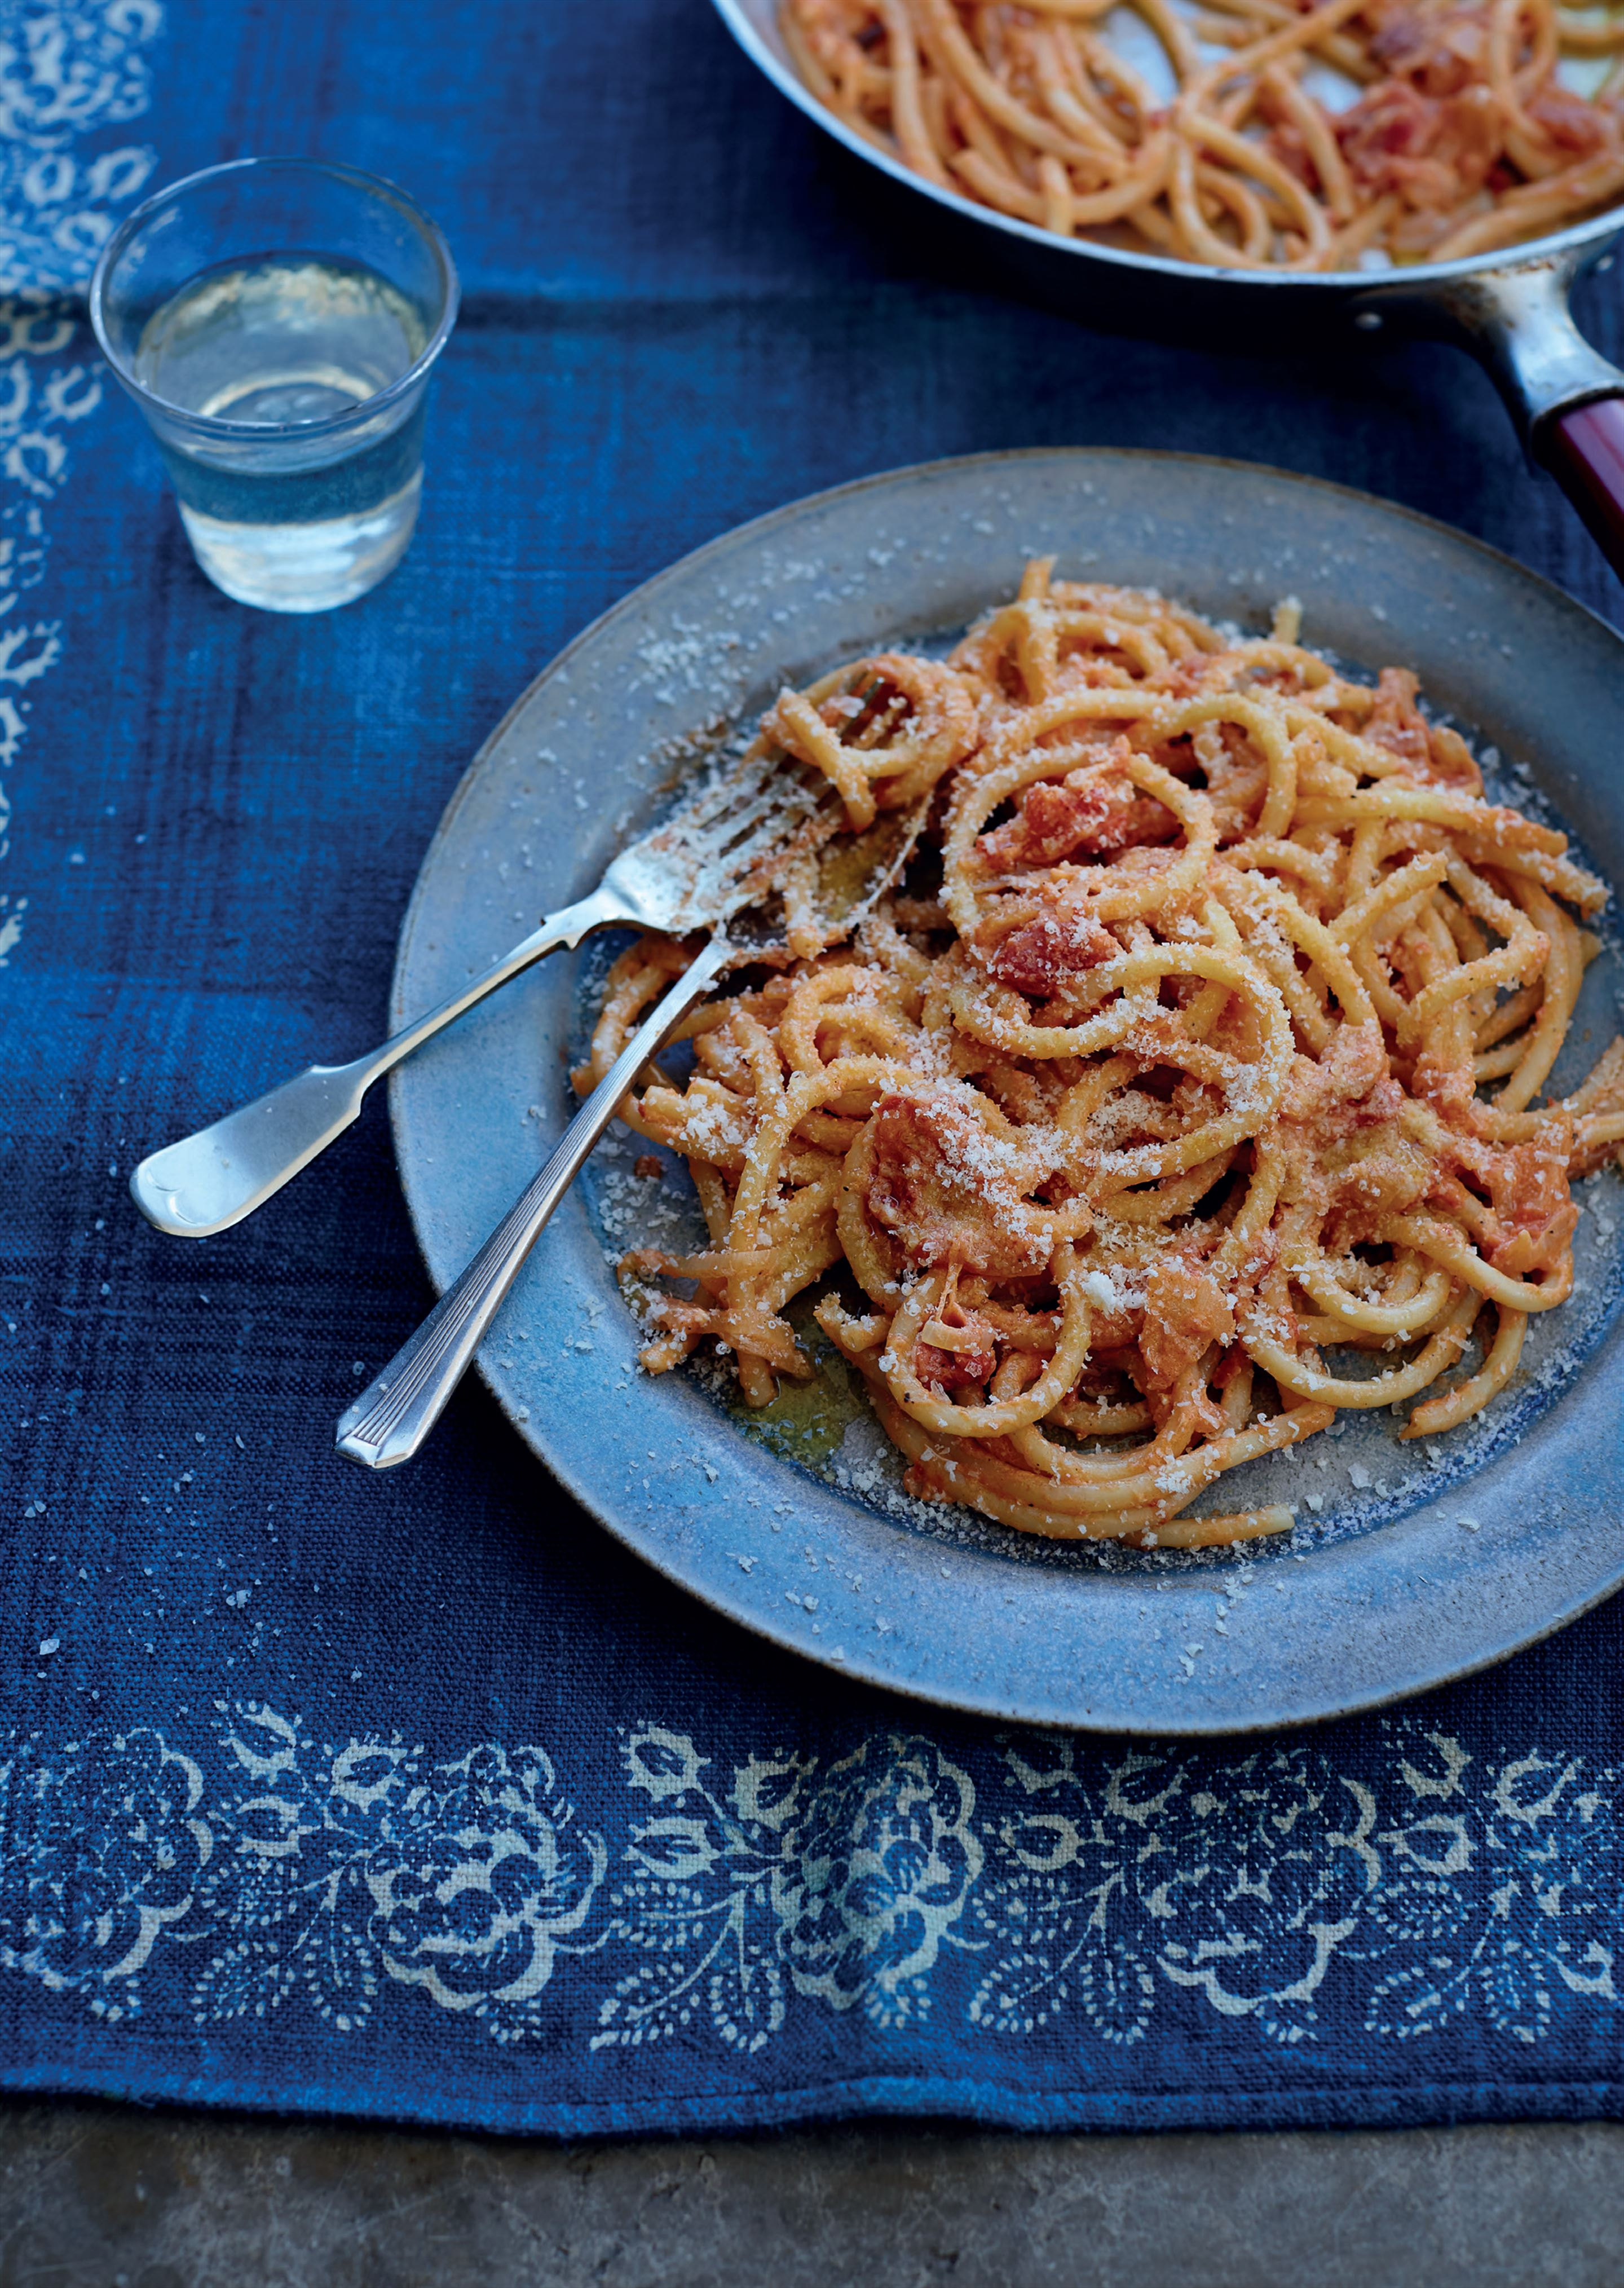 Pasta with onion and tomato sauce